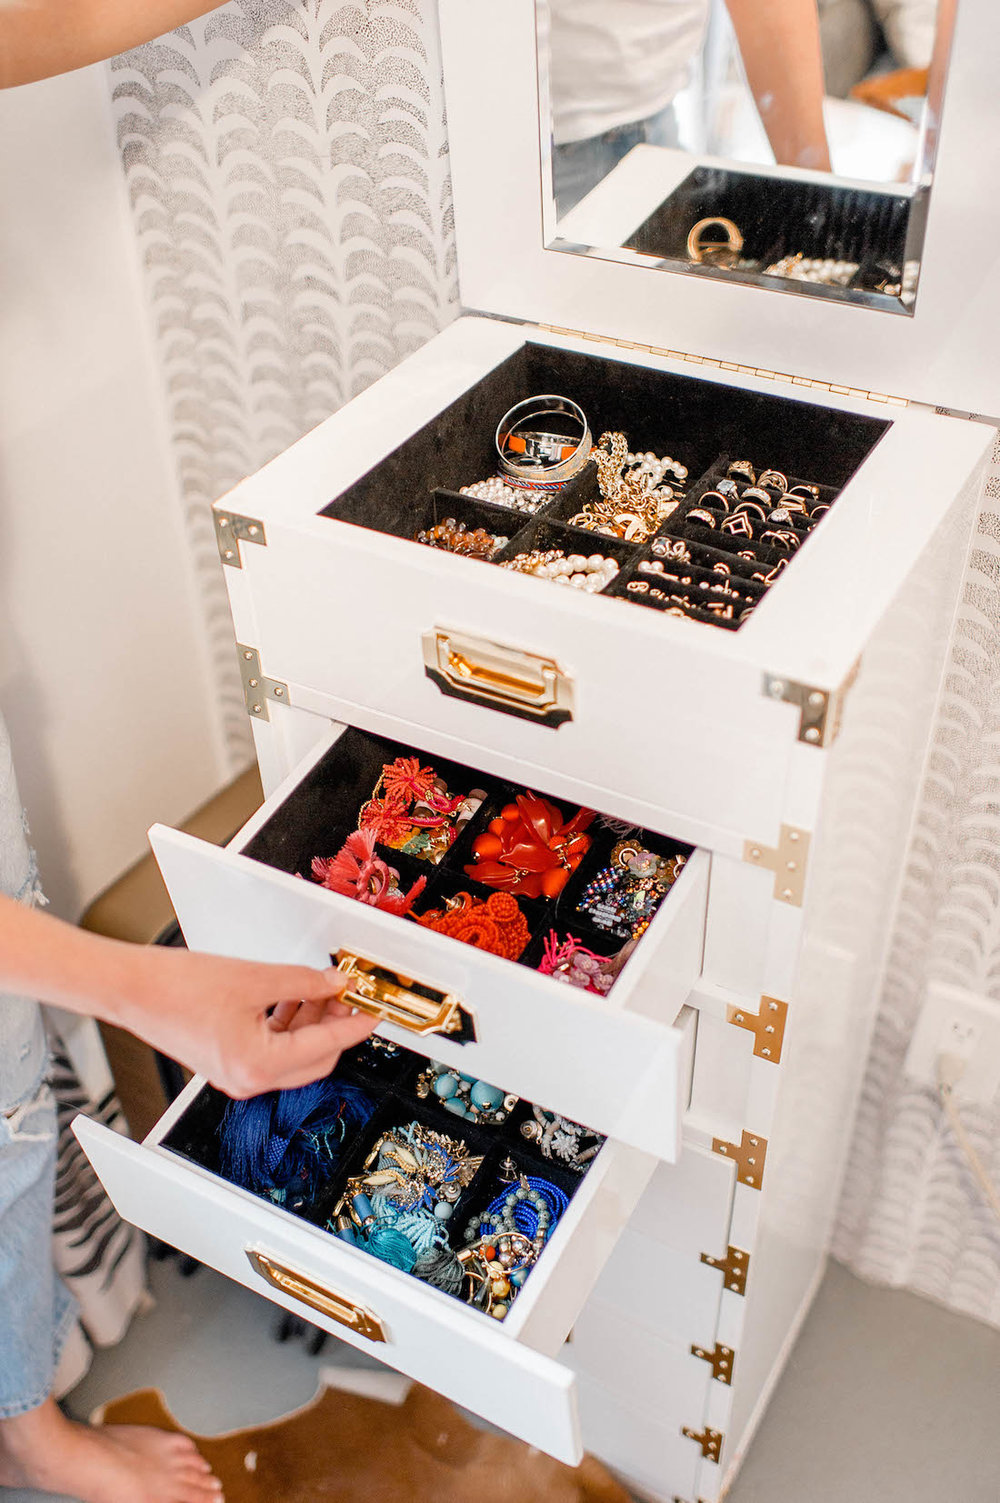 armoire-furniture-how-to-organize-jewelry-closet-wardrobe-earrings-rings-necklaces-storage-collection-by-color.jpg